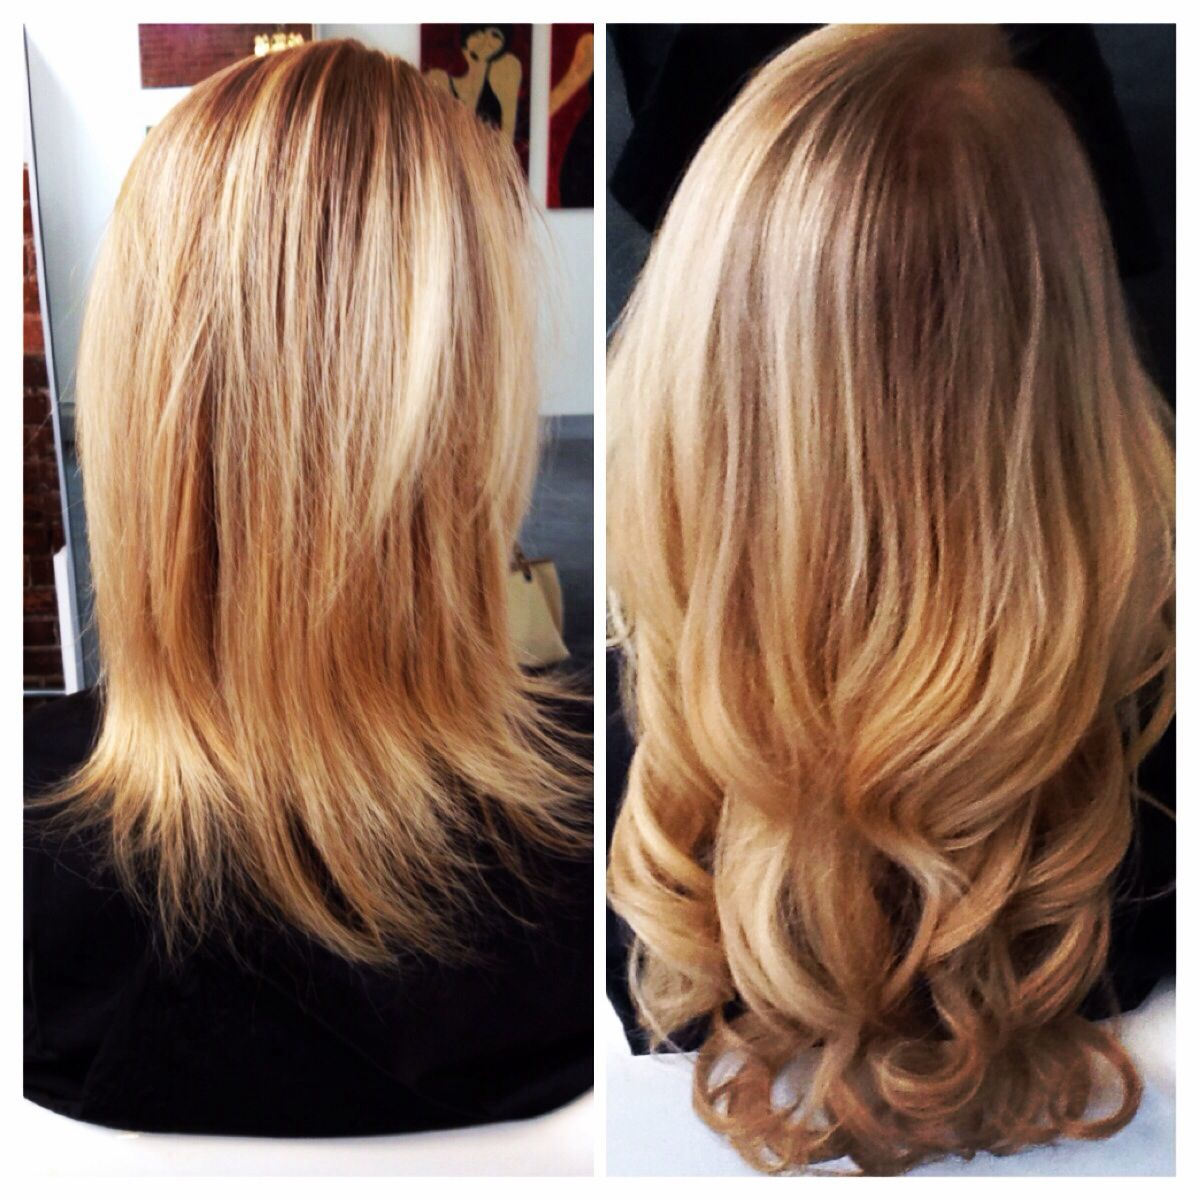 Hair Extensions San Diego By Hair Is Power 619 301 5946 Www